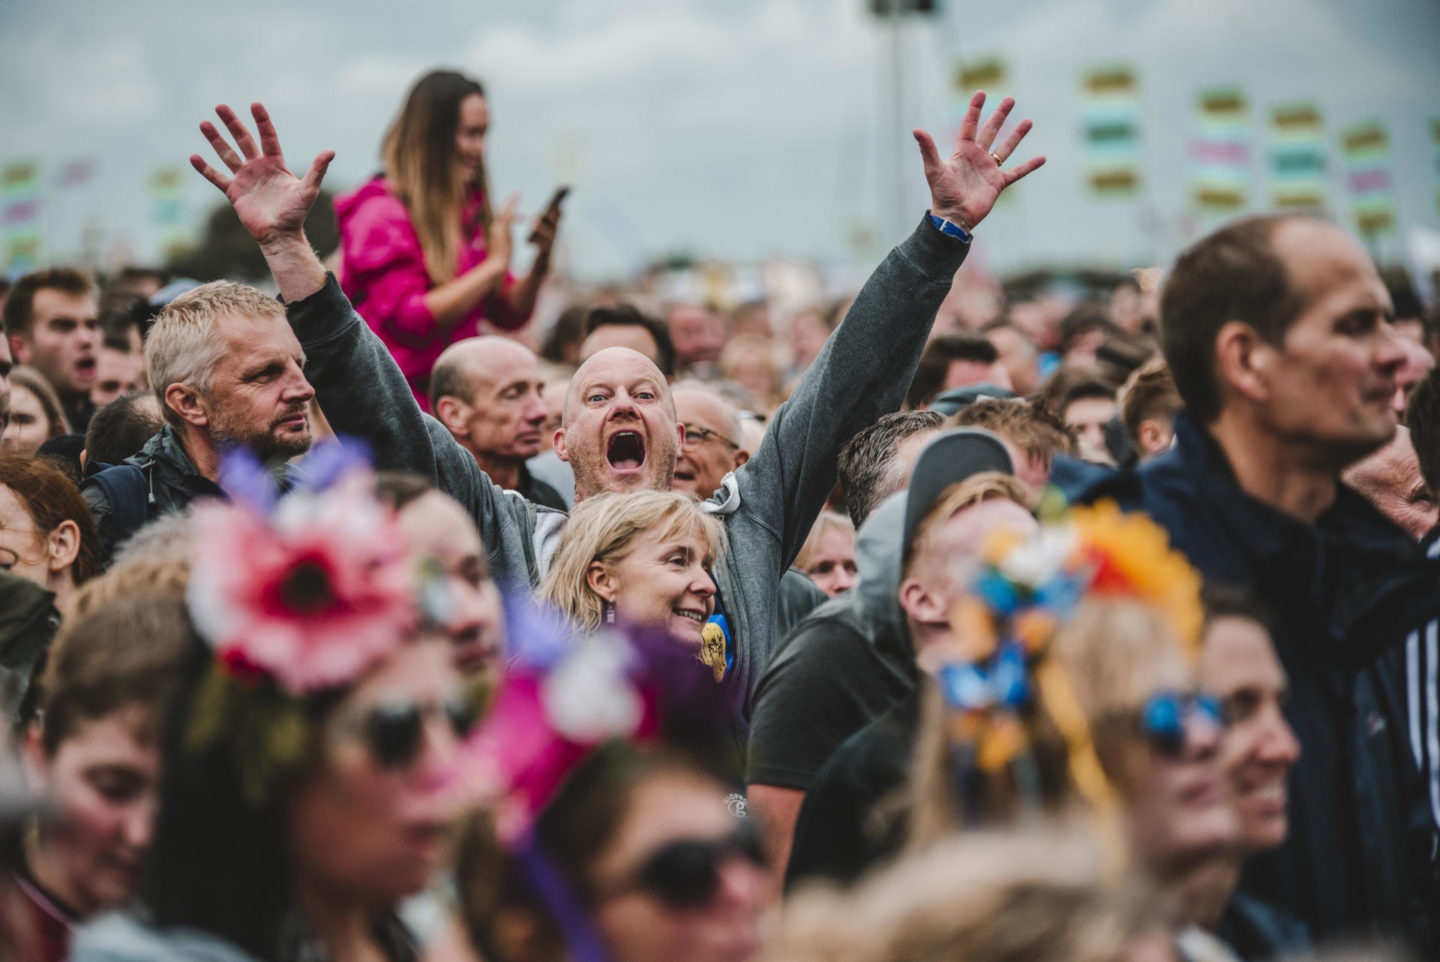 7 REASONS TO VISIT VICTORIOUS FESTIVAL THIS SUMMER